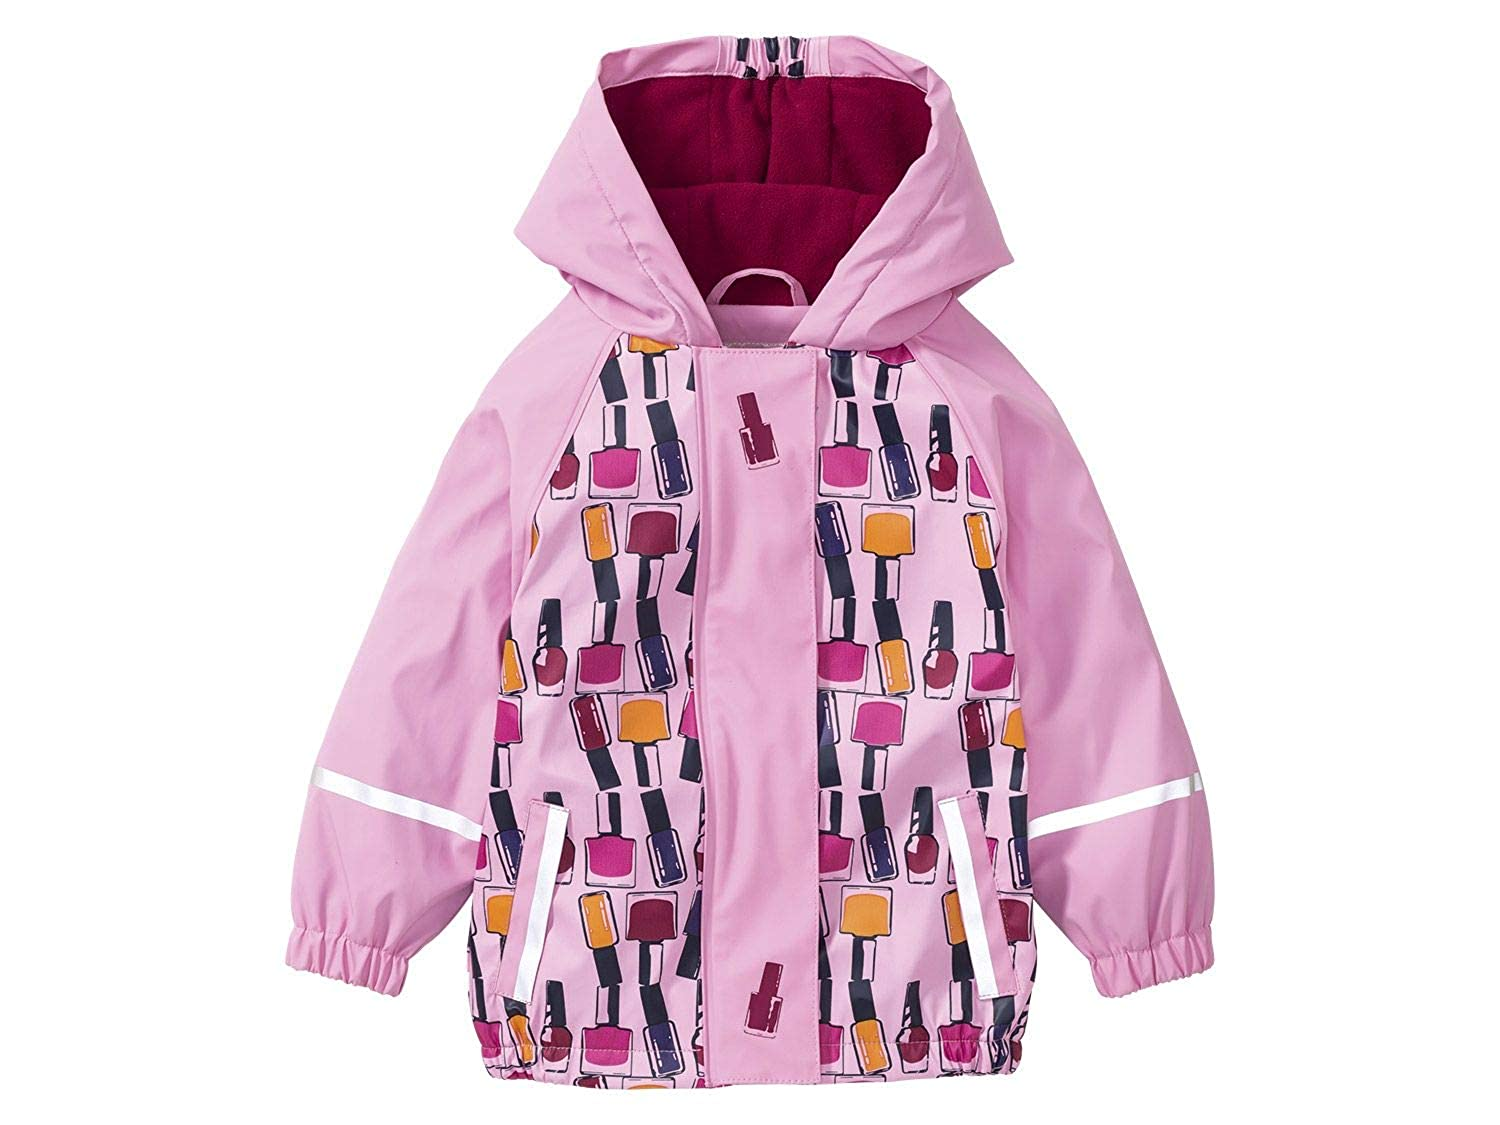 DAYU Girls Waterproof Hooded Jackets Fleece Lined Rain Jackets DAYU INC.